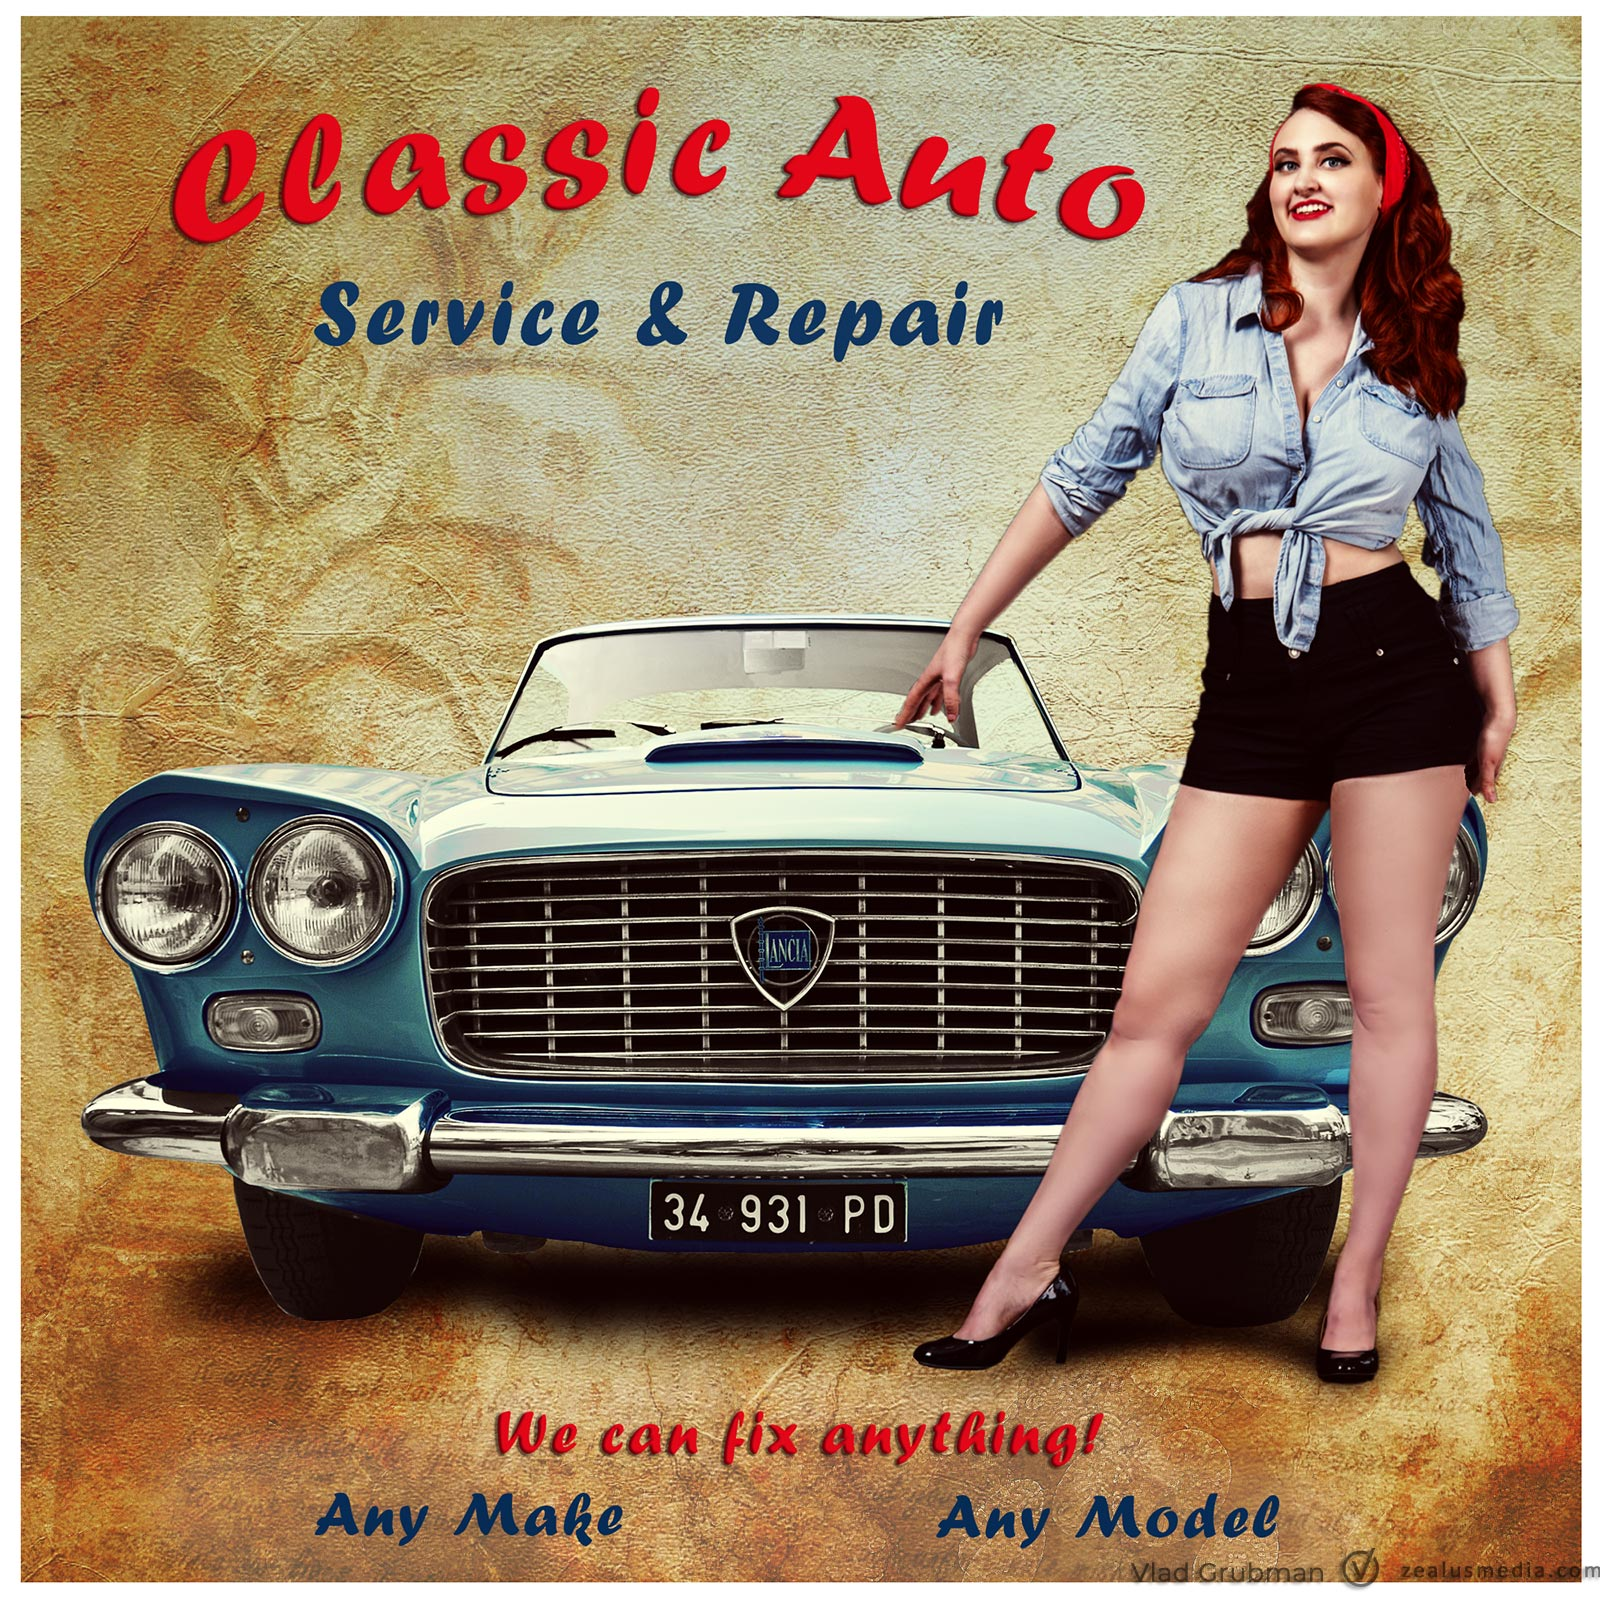 Vintage Poster – Another Car Repair Shop Poster